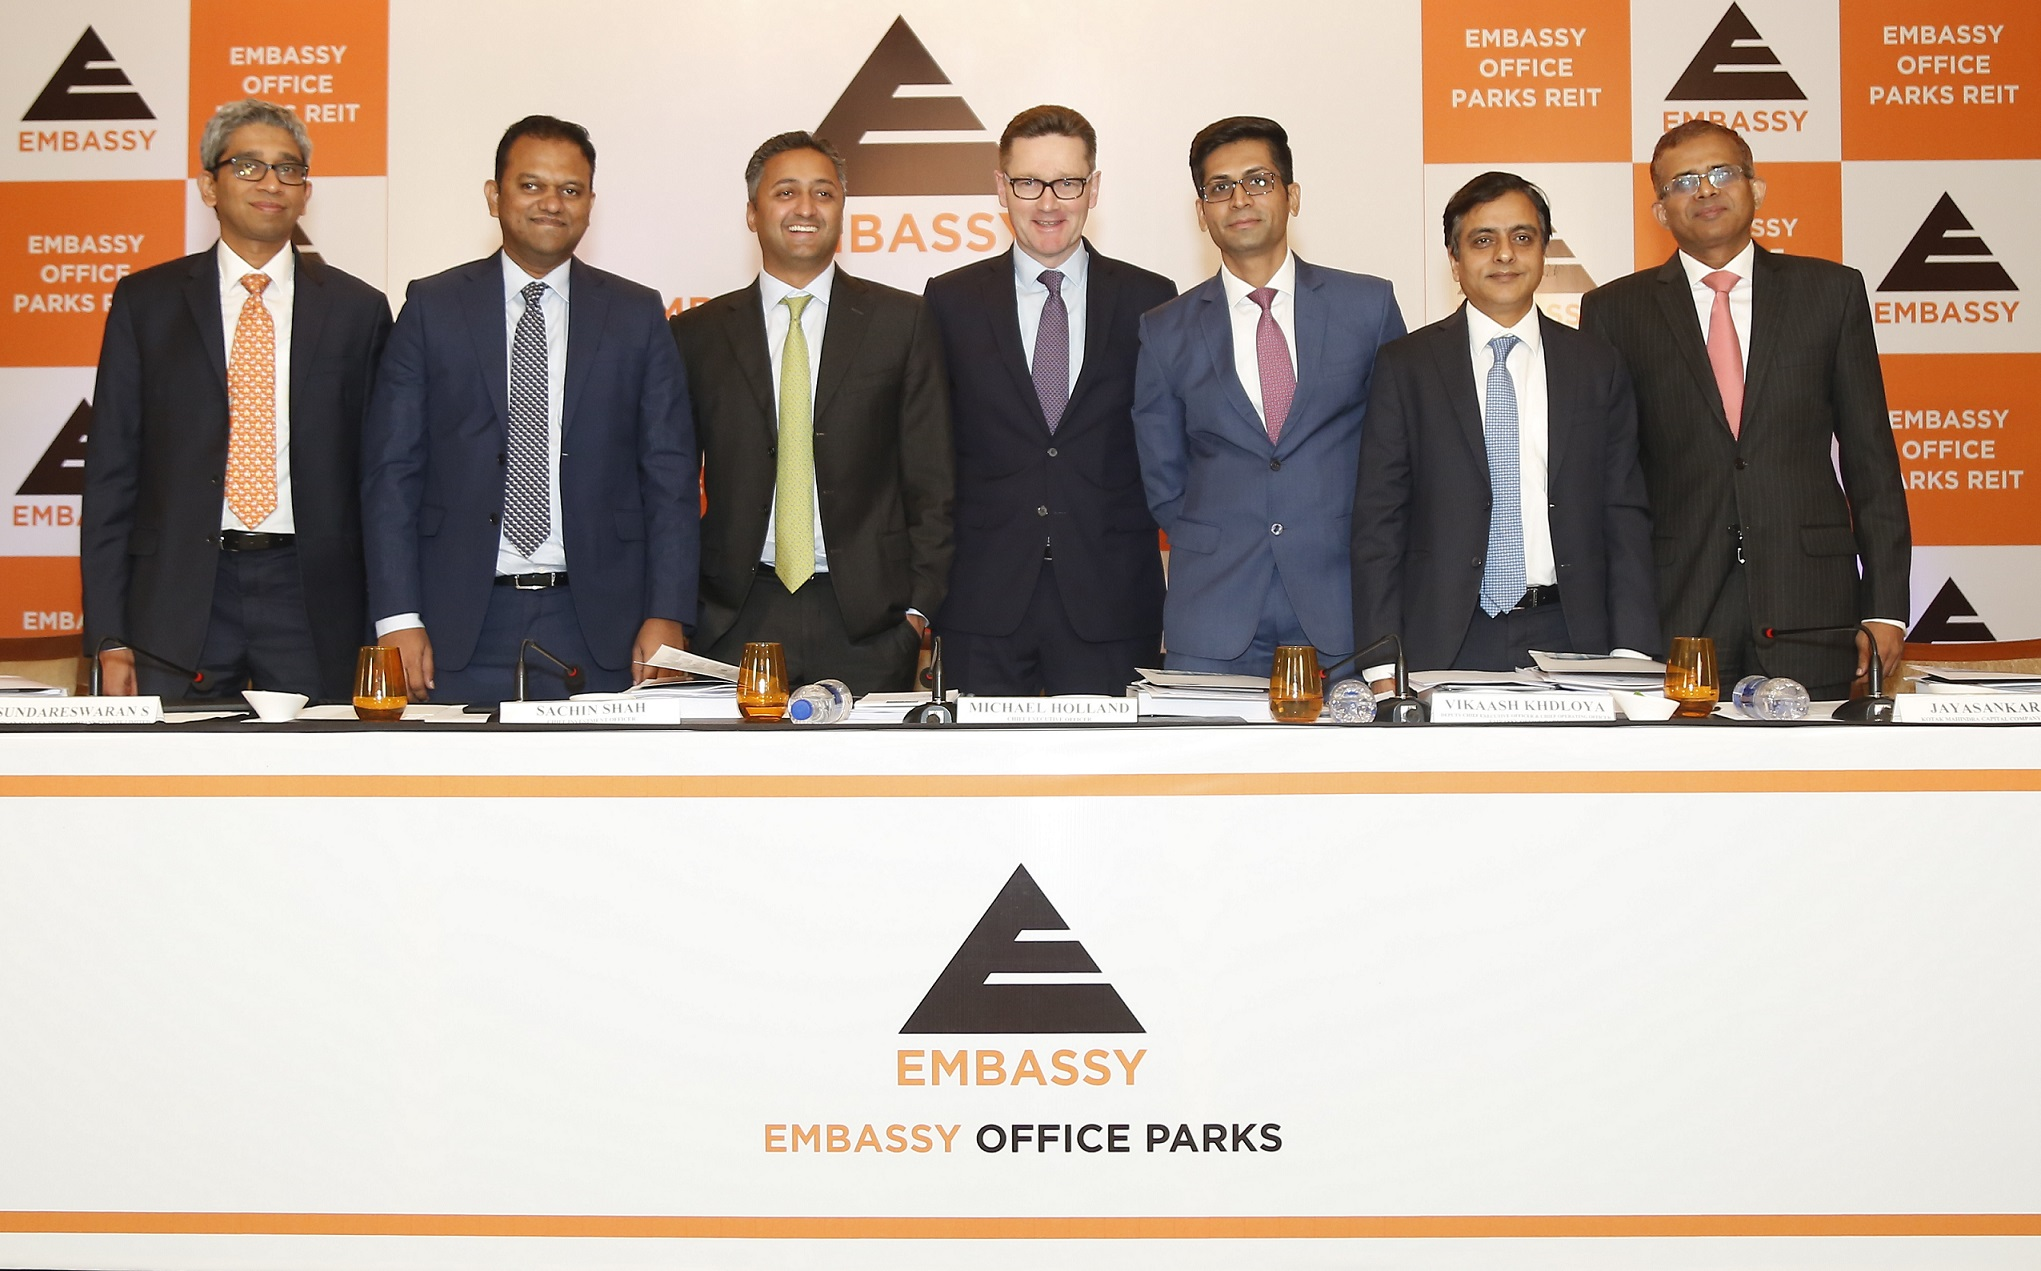 "L to R - Raj Balakrishnan (DSP Merrill Lynch Ltd.), Sundareswaran S. (Morgan Stanley India Company Pvt. Ltd.) Sachin Shah (CIO, Embassy Office Parks Management Services Pvt. Ltd.), Michael Holland (CEO, Embassy Office Parks Management Services Pvt. Ltd.), Vikaash Khdloya (Dy. CEO & COO, Embassy Office Parks Management Services Pvt. Ltd.), V. Jayasankar (Kotak Mahindra Capital Company Ltd.) and Kaustubh Kulkarni (J.P. Morgan India Private Limited) at the press conference to announce Embassy Office Parks REIT (""Embassy REIT"") IPO - Bids open on March 18, 2019 and closes on March 20, 2019"